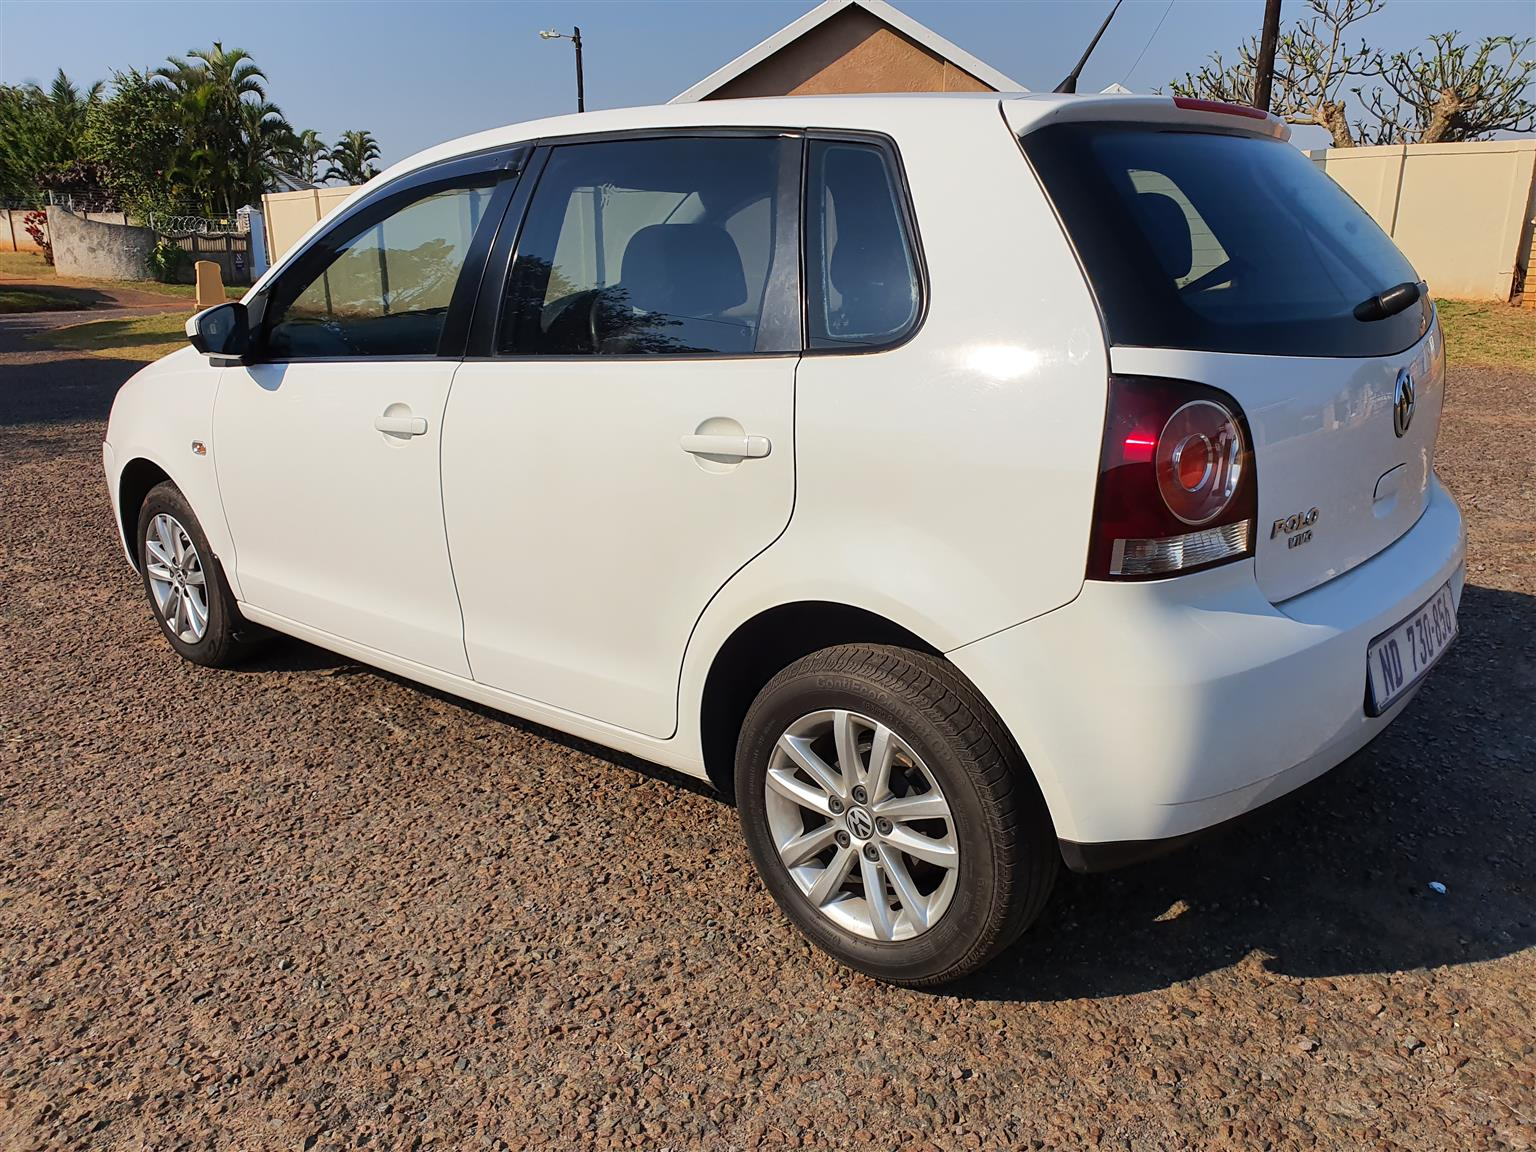 Polo Vivo Speed Gearbox And Others